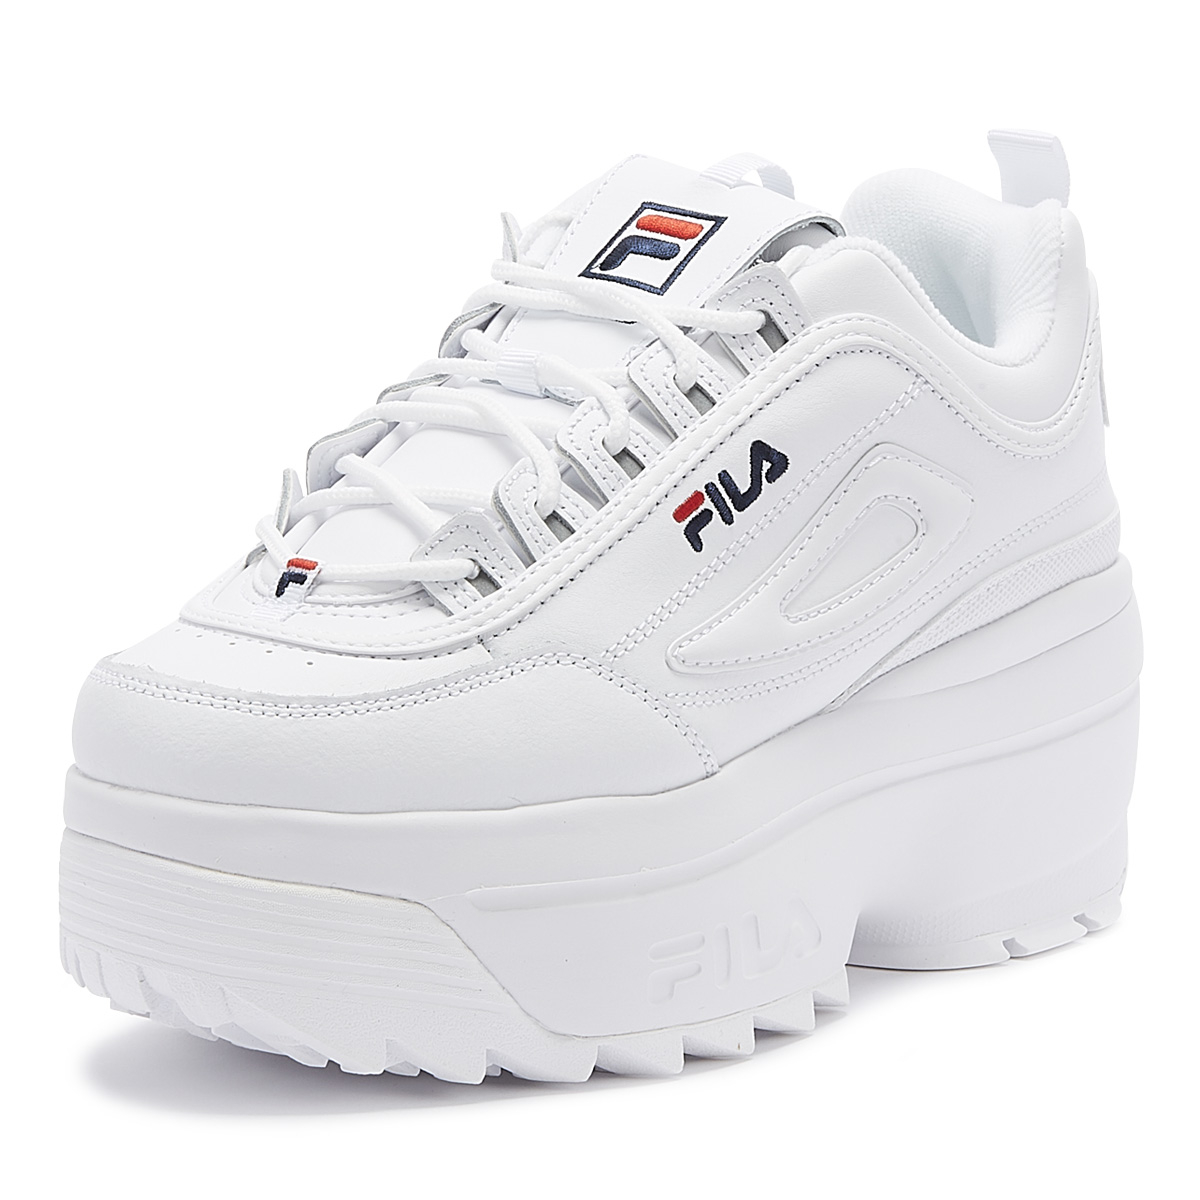 fila trainers for ladies